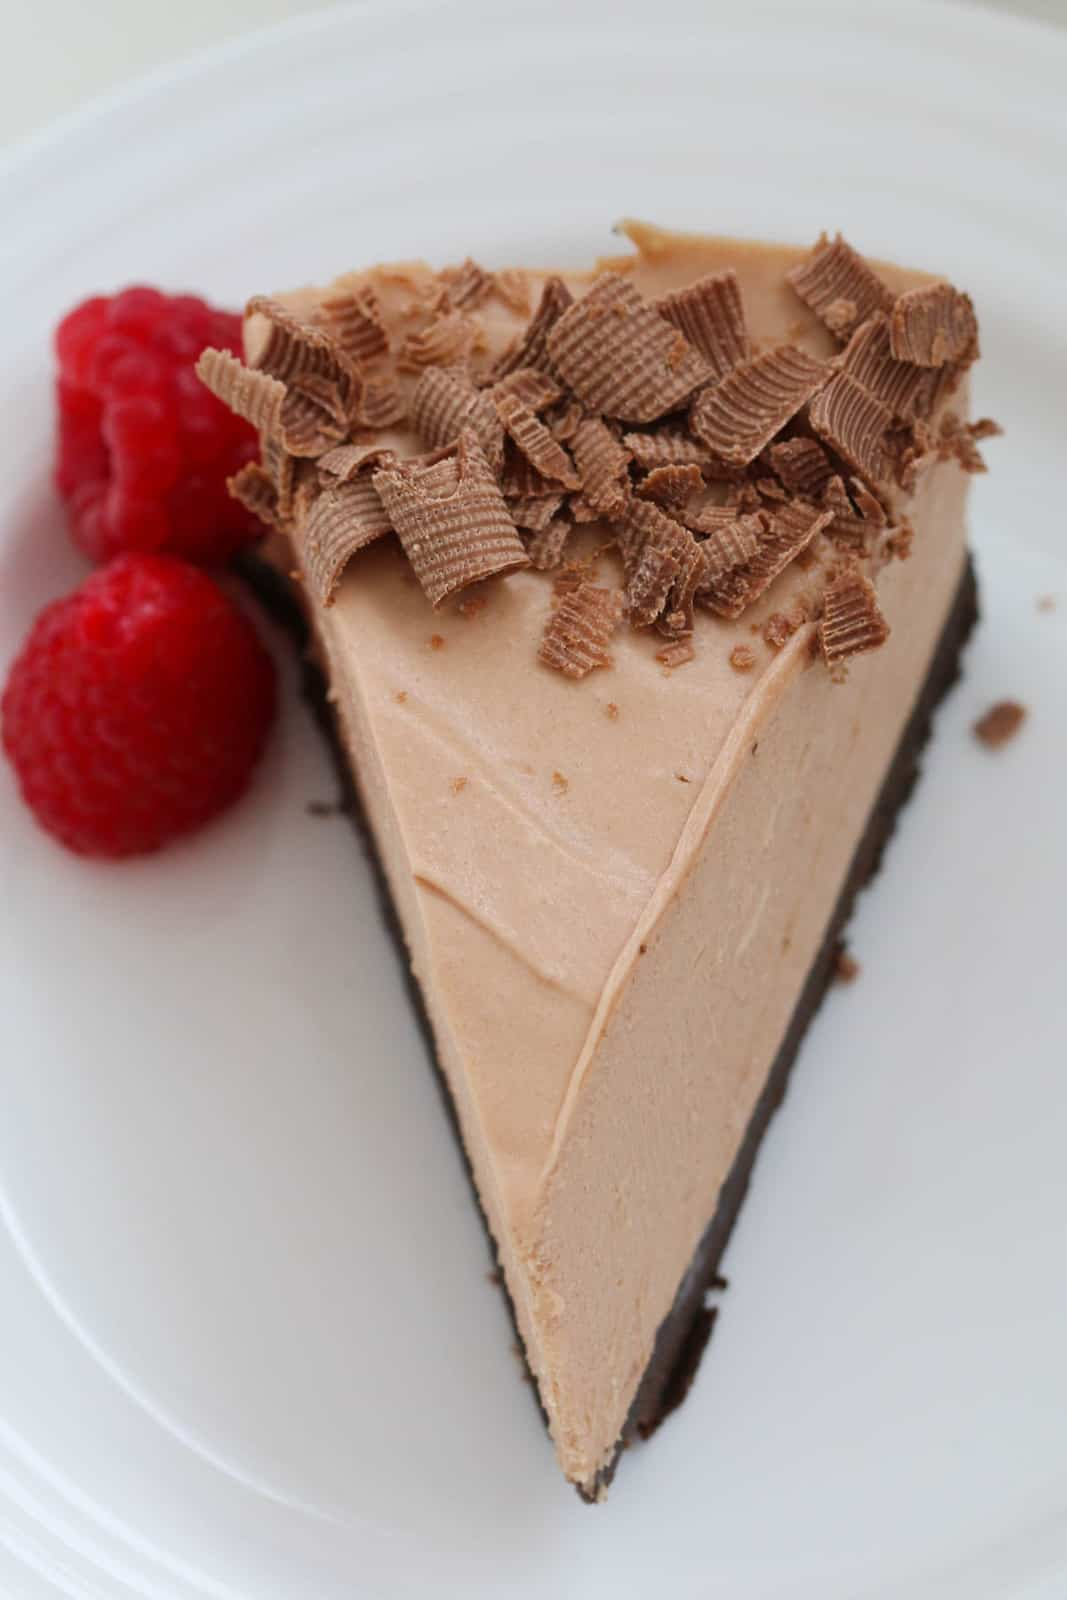 An overhead shot of a serve of cheesecake with chocolate on top and raspberries beside.